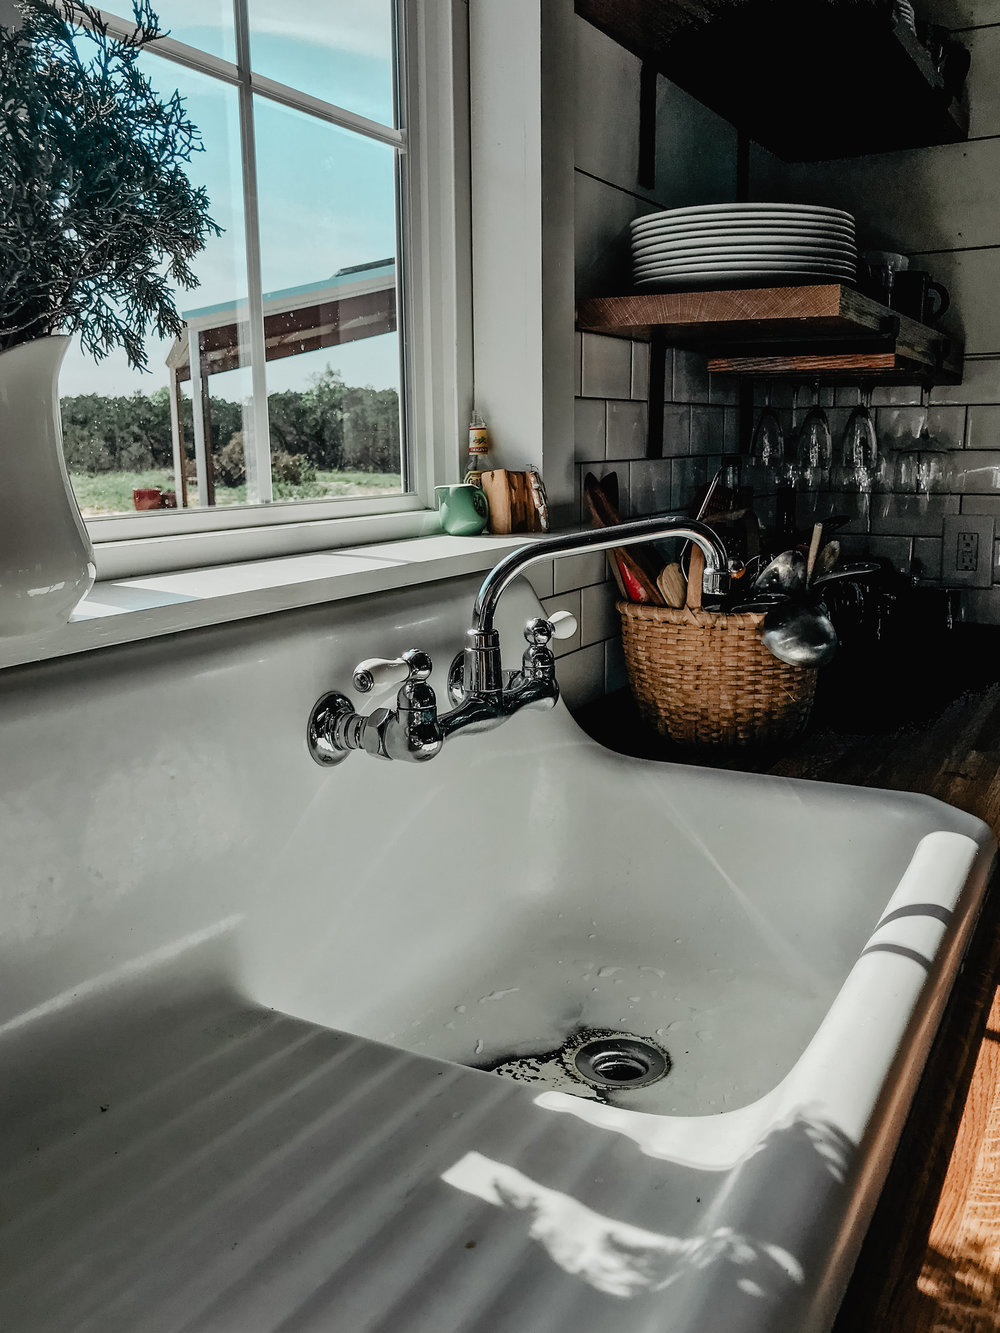 The barn house sink from Craigslist.